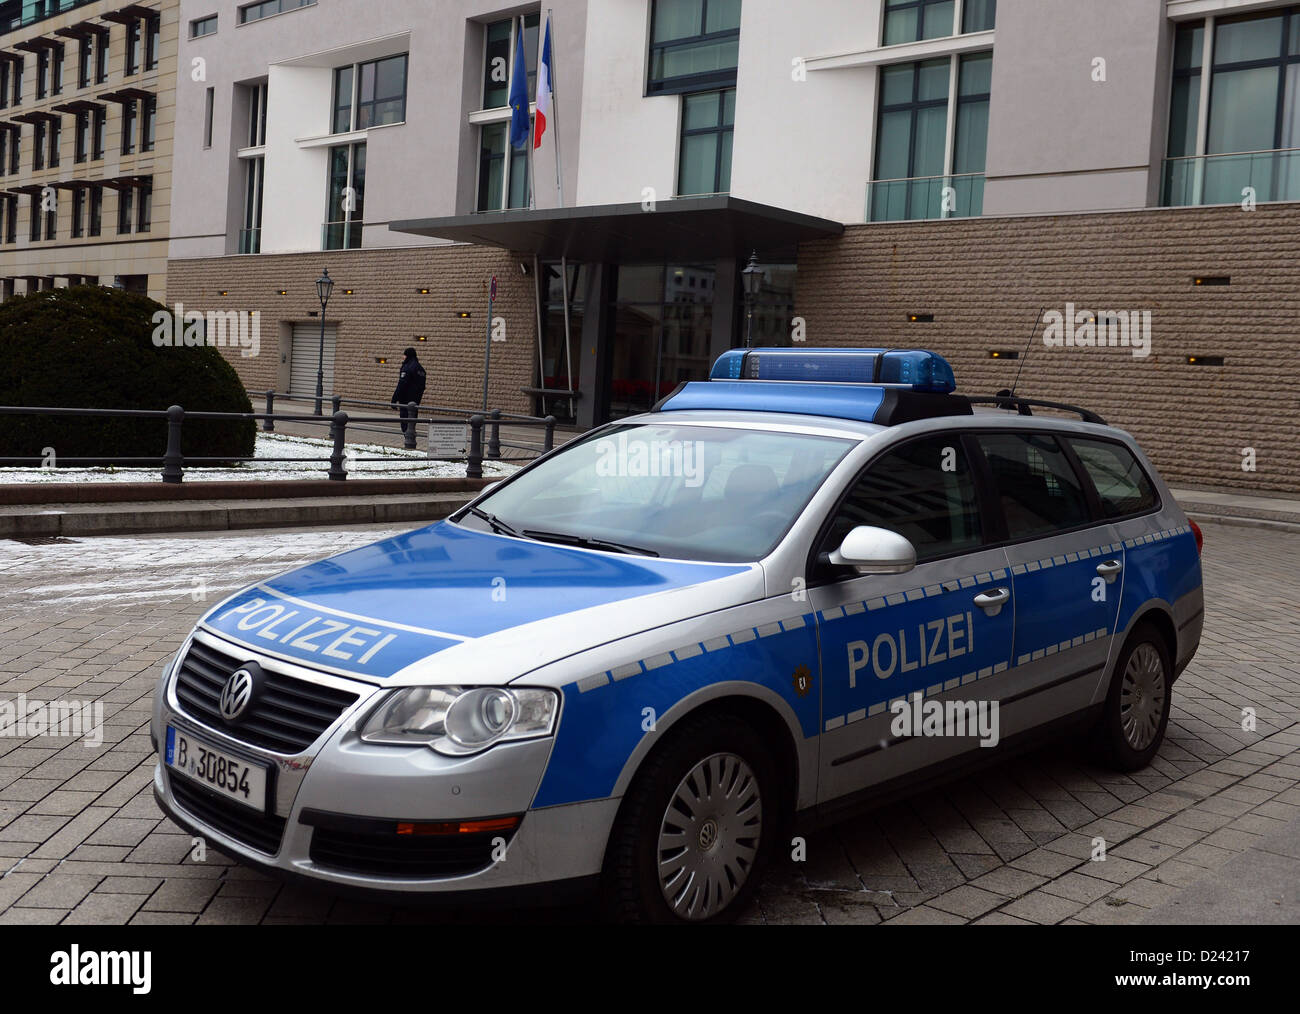 A police vehicle is parked in front of the French Embassy in Berlin, Germany, 13 January 2013. No extraordinary - Stock Image